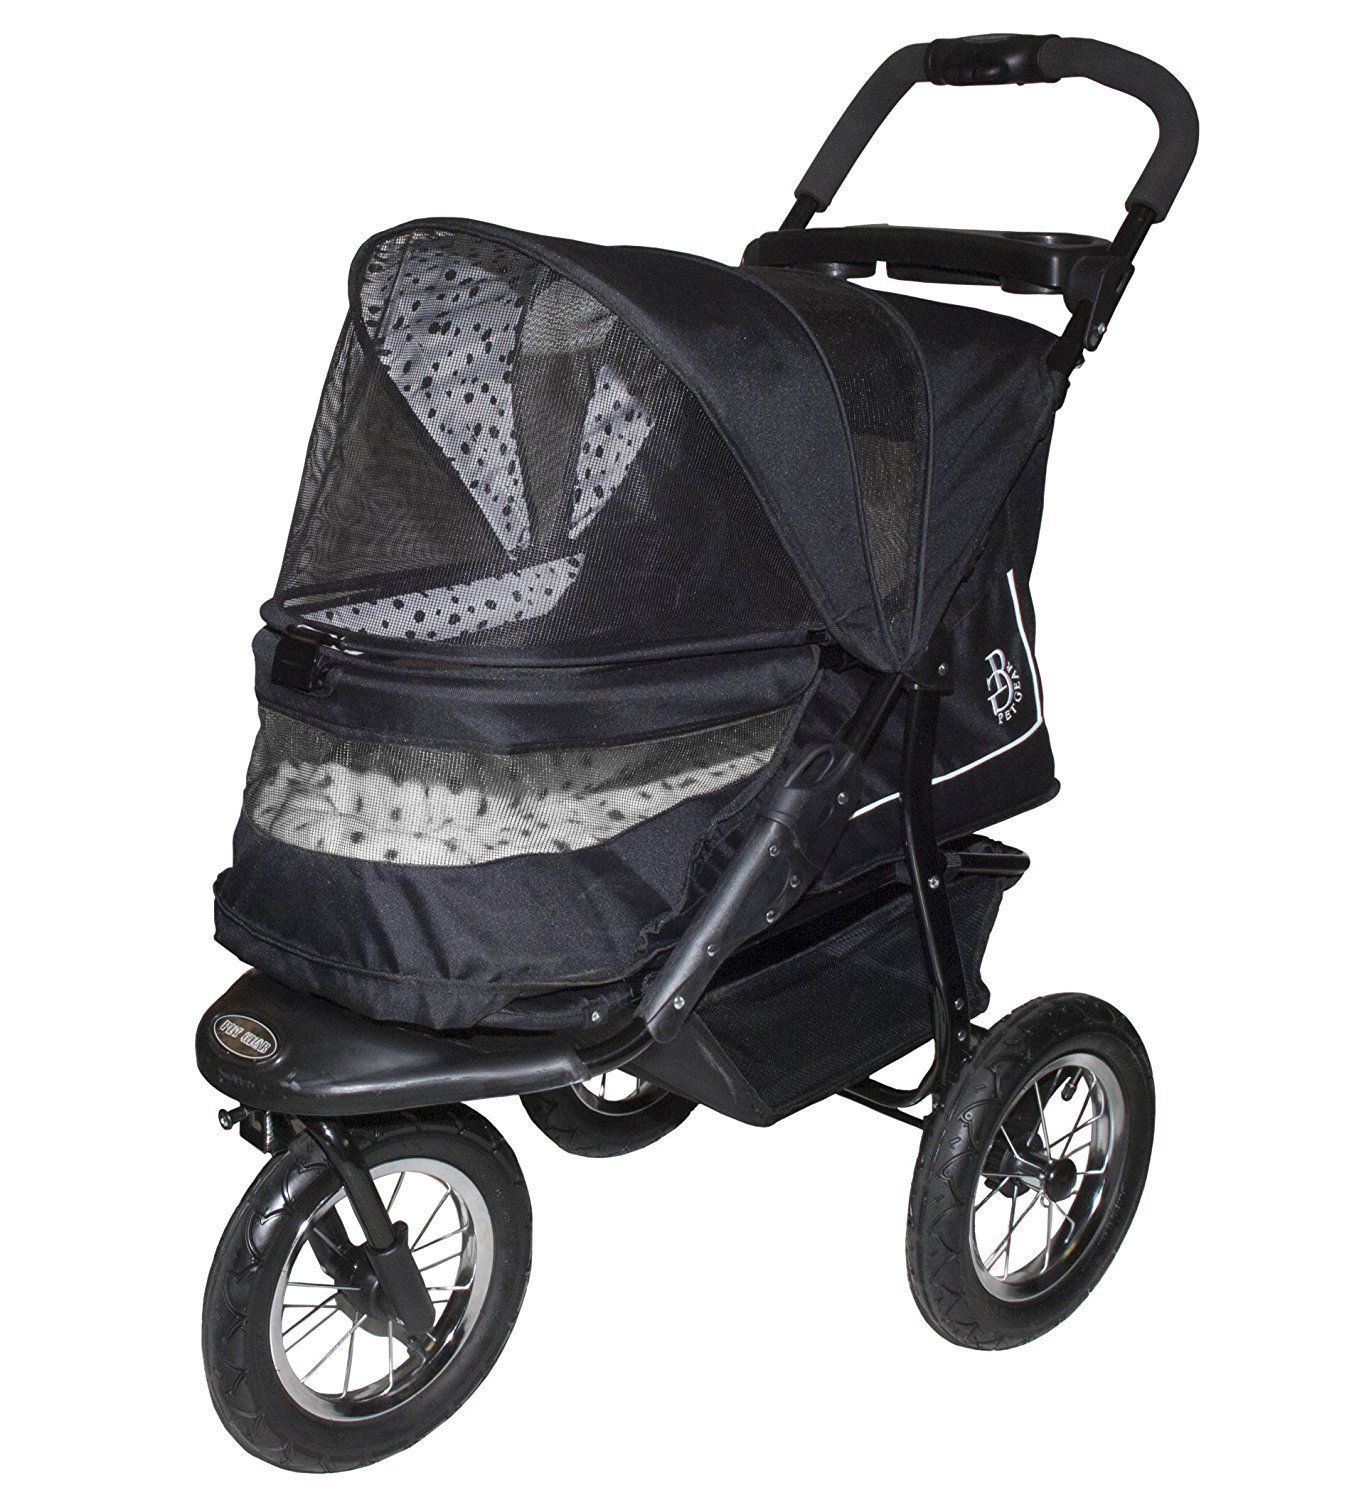 Skyline NV NOZIP Pet Stroller For Pets Up To 70 lbs